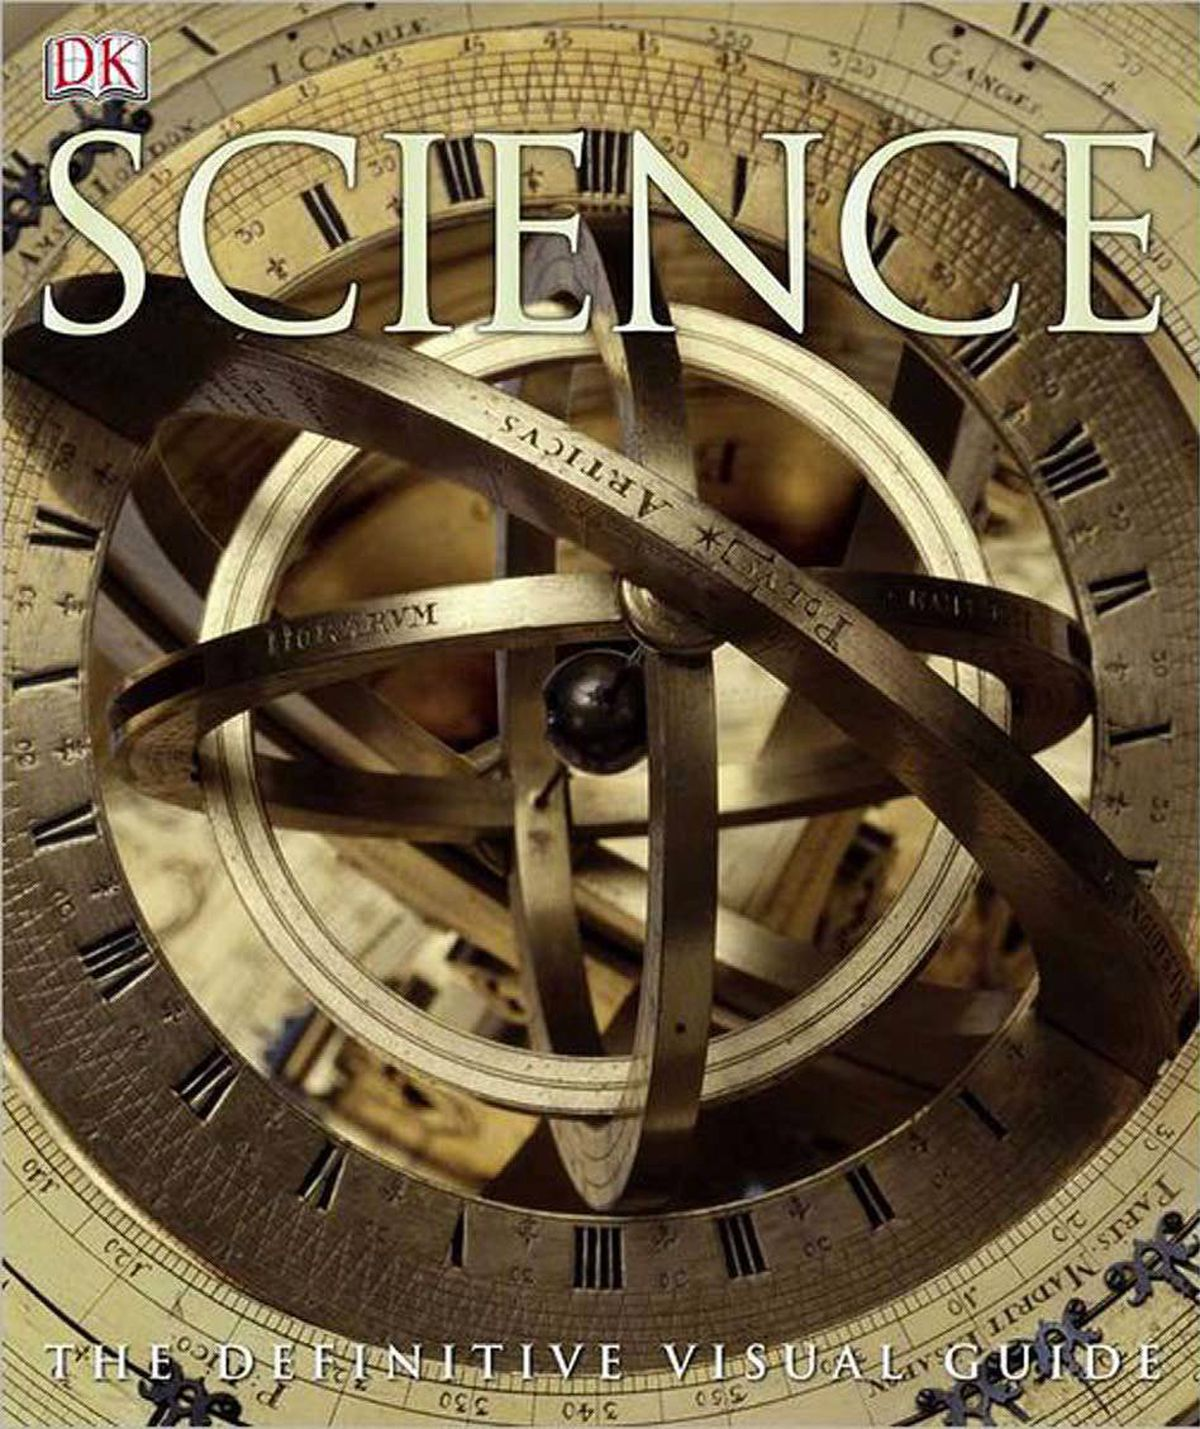 SCIENCE The Definitive Visual Guide Edited by Adam Hart-Davis (DK, 512 pages, $27.95) From prehistory to present day, significant scientific findings are laid out in this visually rich edition. Photographs, drawings and graphics expertly aid our understanding of discoveries. The chronological structure lets us see how earlier scientific discoveries often became the base of later, related breakthroughs.